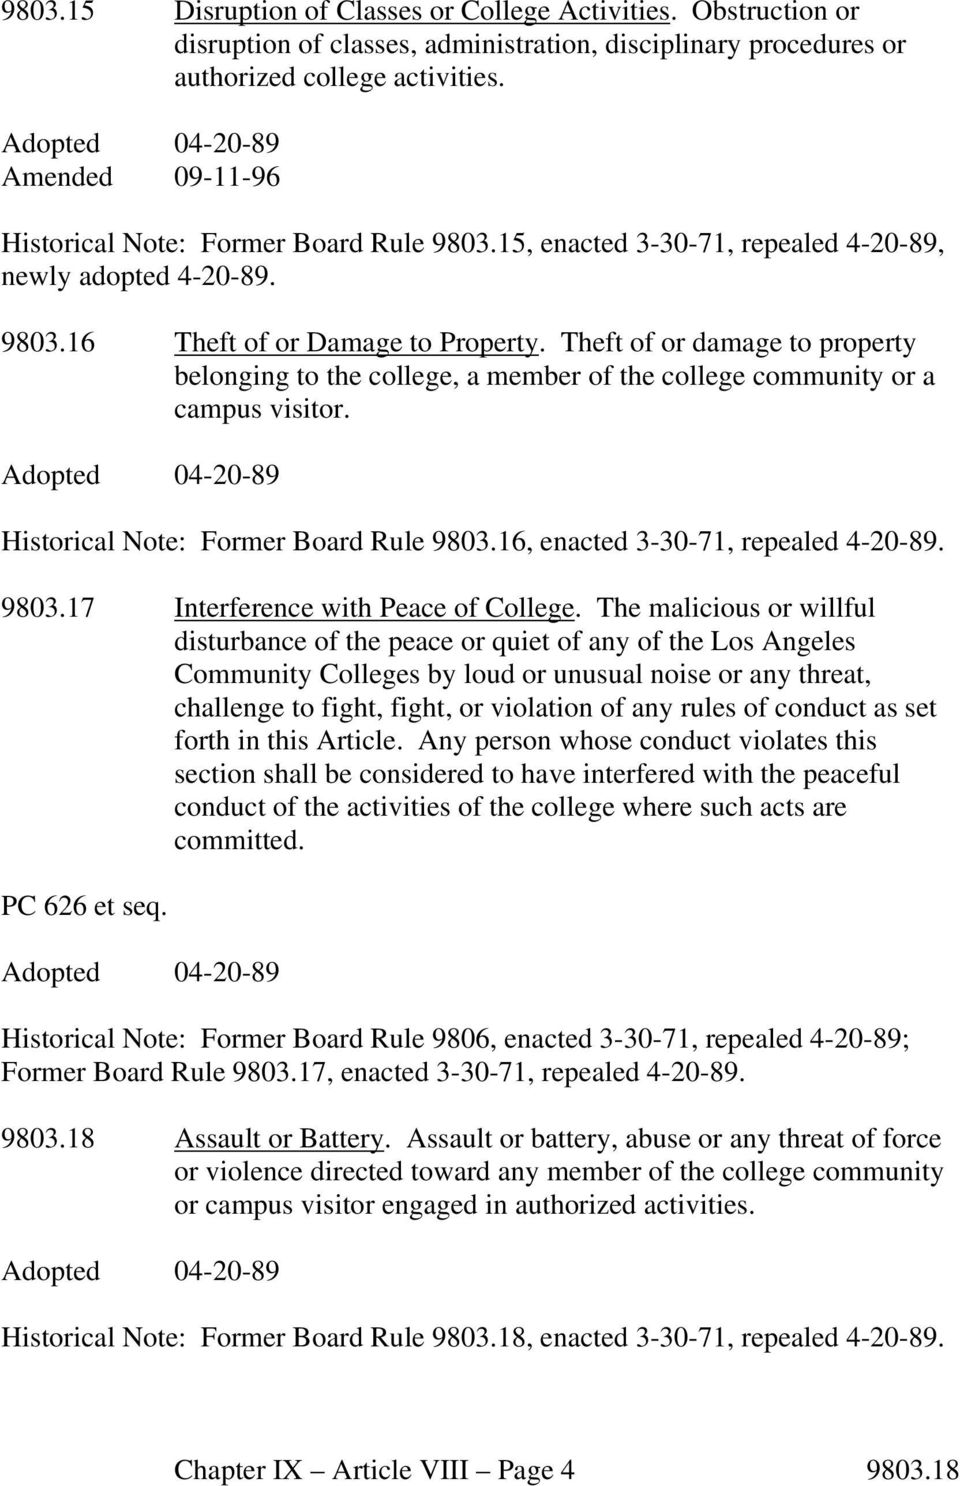 Theft of or damage to property belonging to the college, a member of the college community or a campus visitor. Historical Note: Former Board Rule 9803.16, enacted 3-30-71, repealed 4-20-89. 9803.17 Interference with Peace of College.